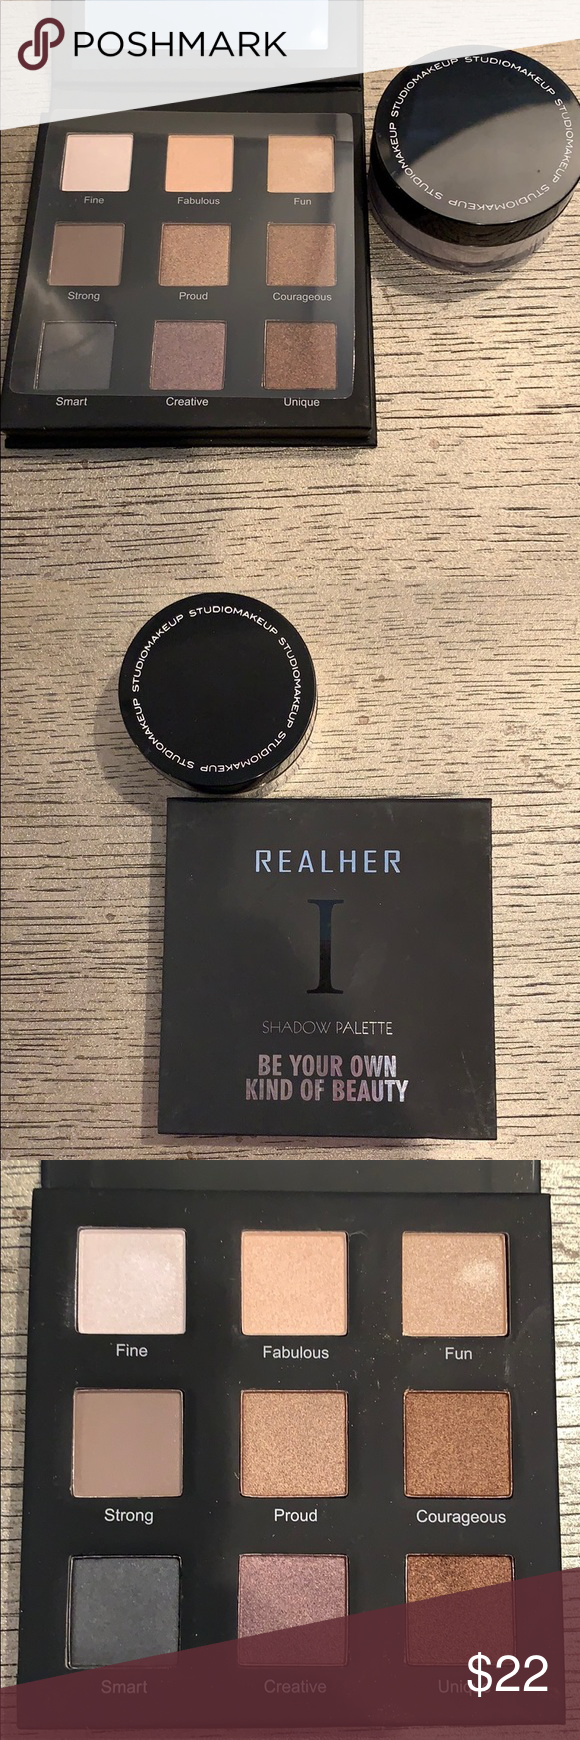 Realher eyeshadow palette and Finishing Powder NWT